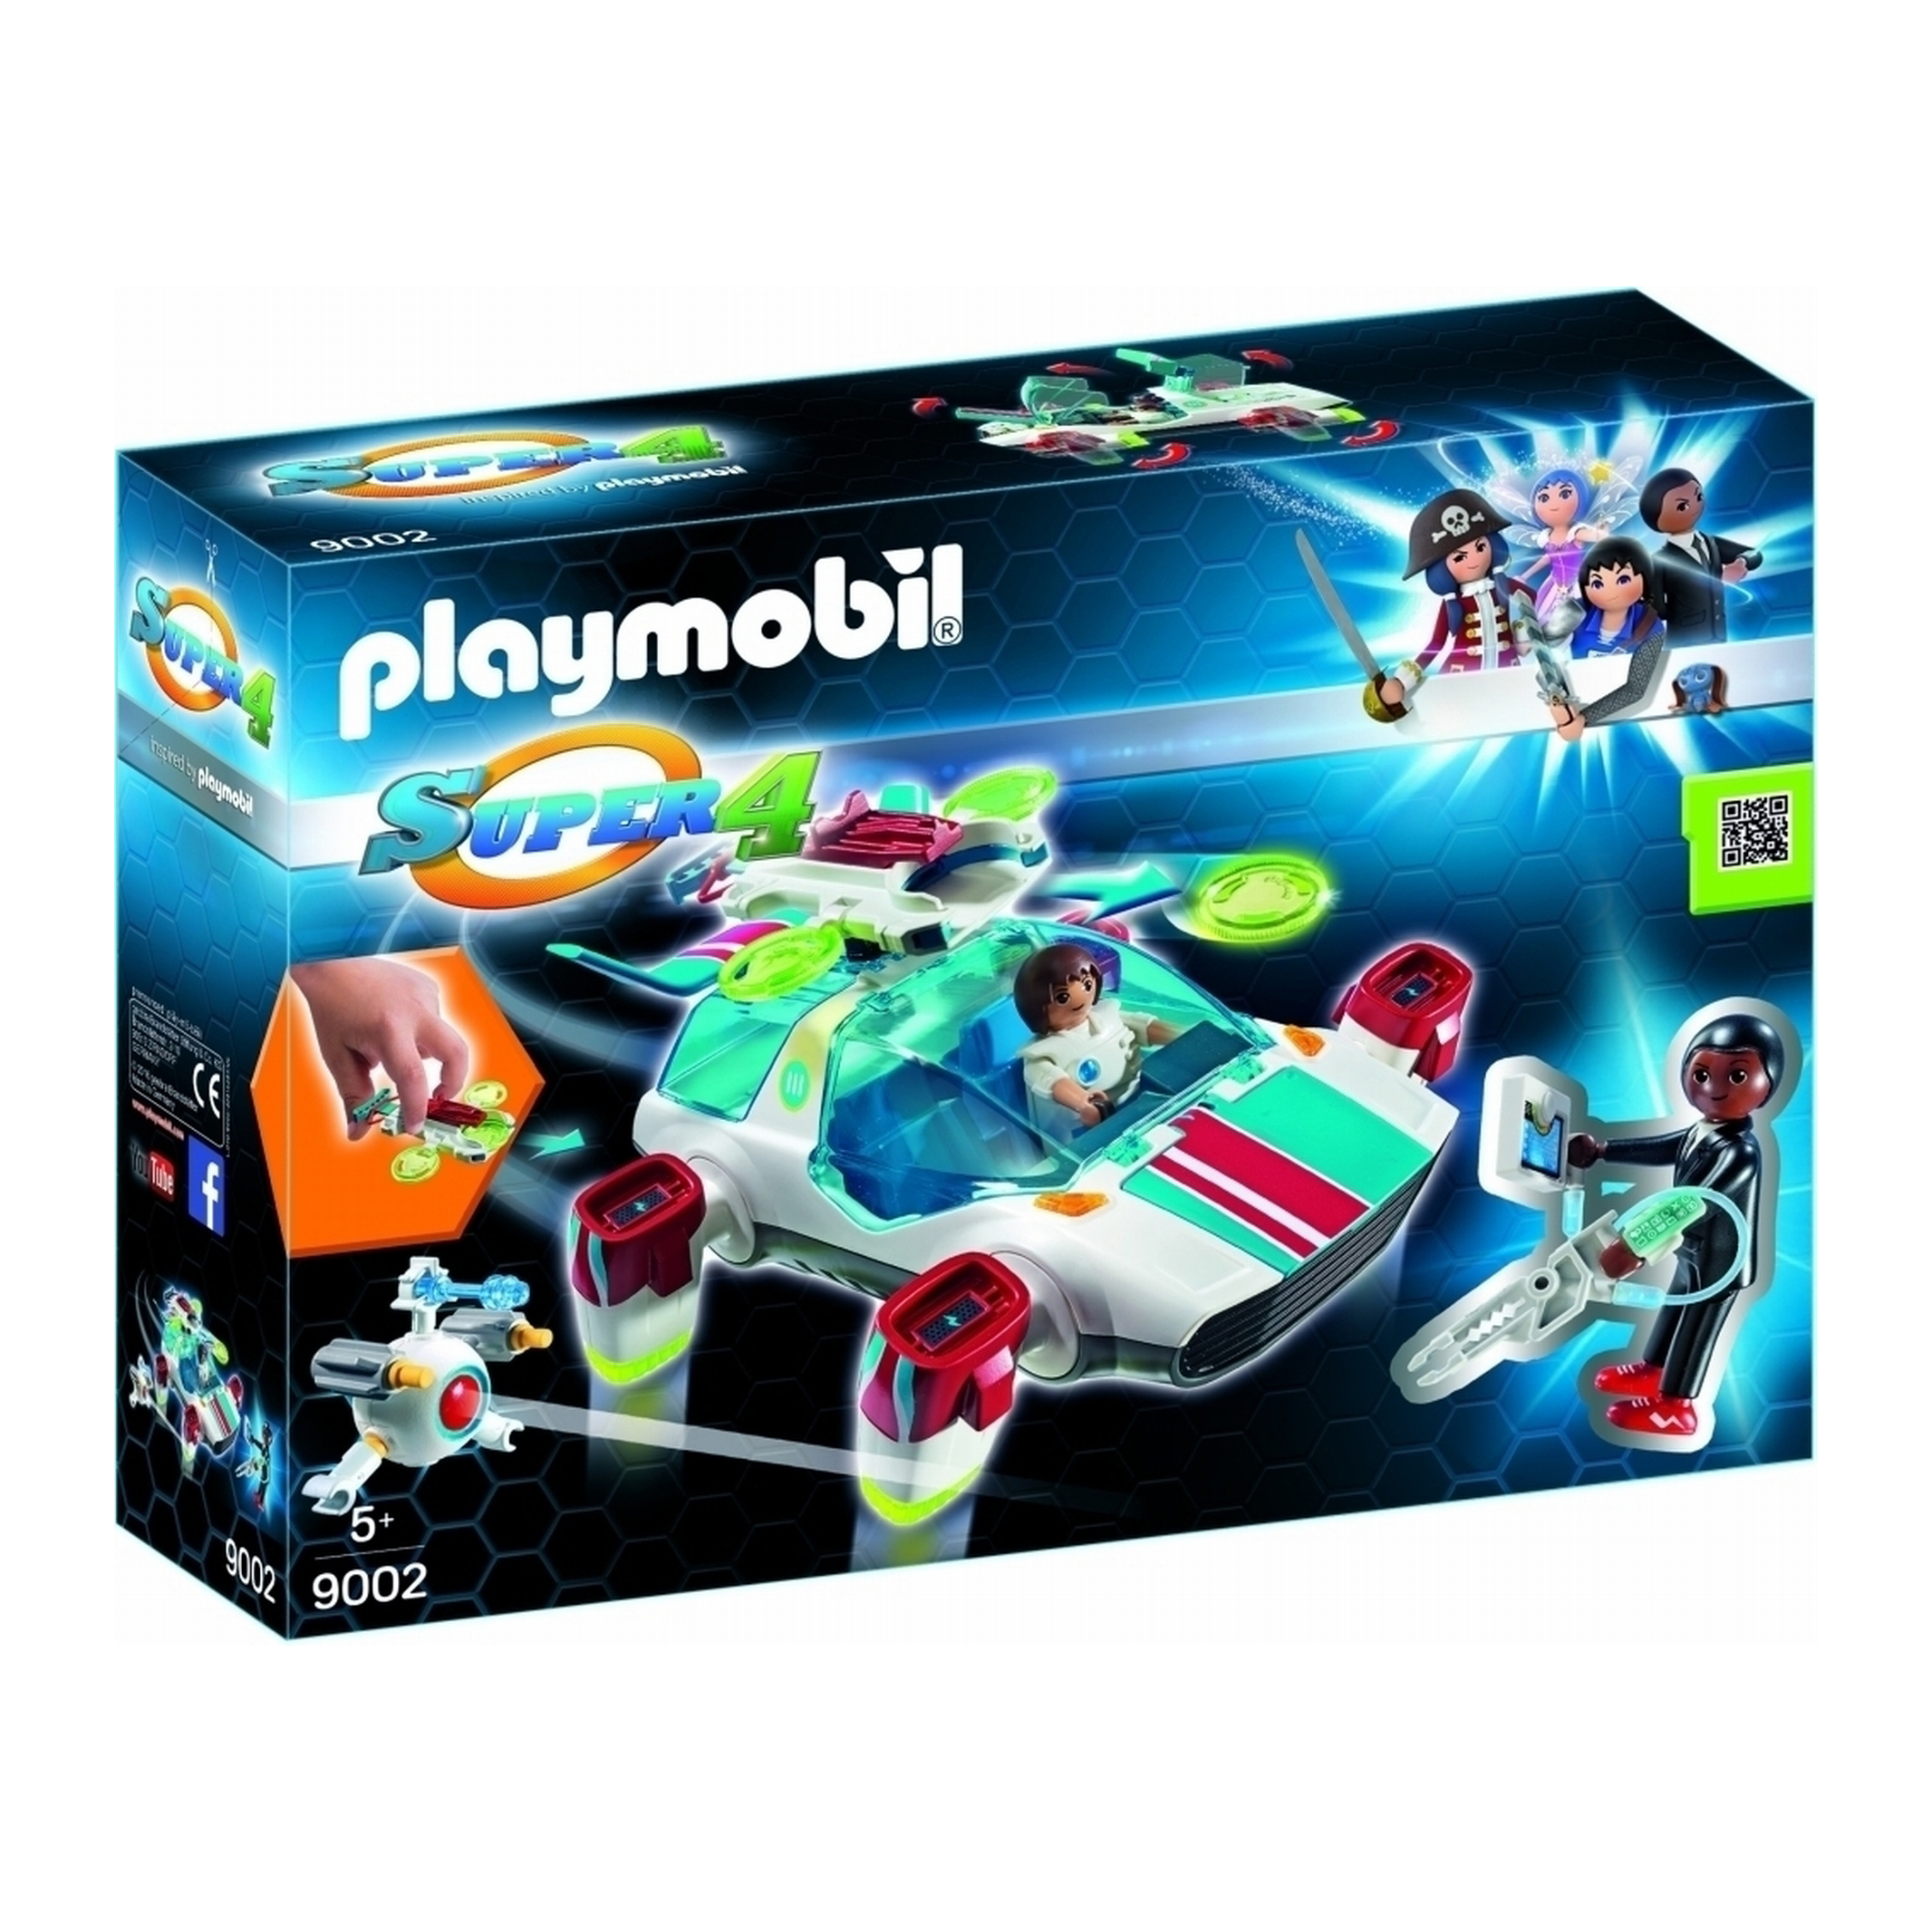 Playmobil Super 4 FulguriX With Agent Gene 9002